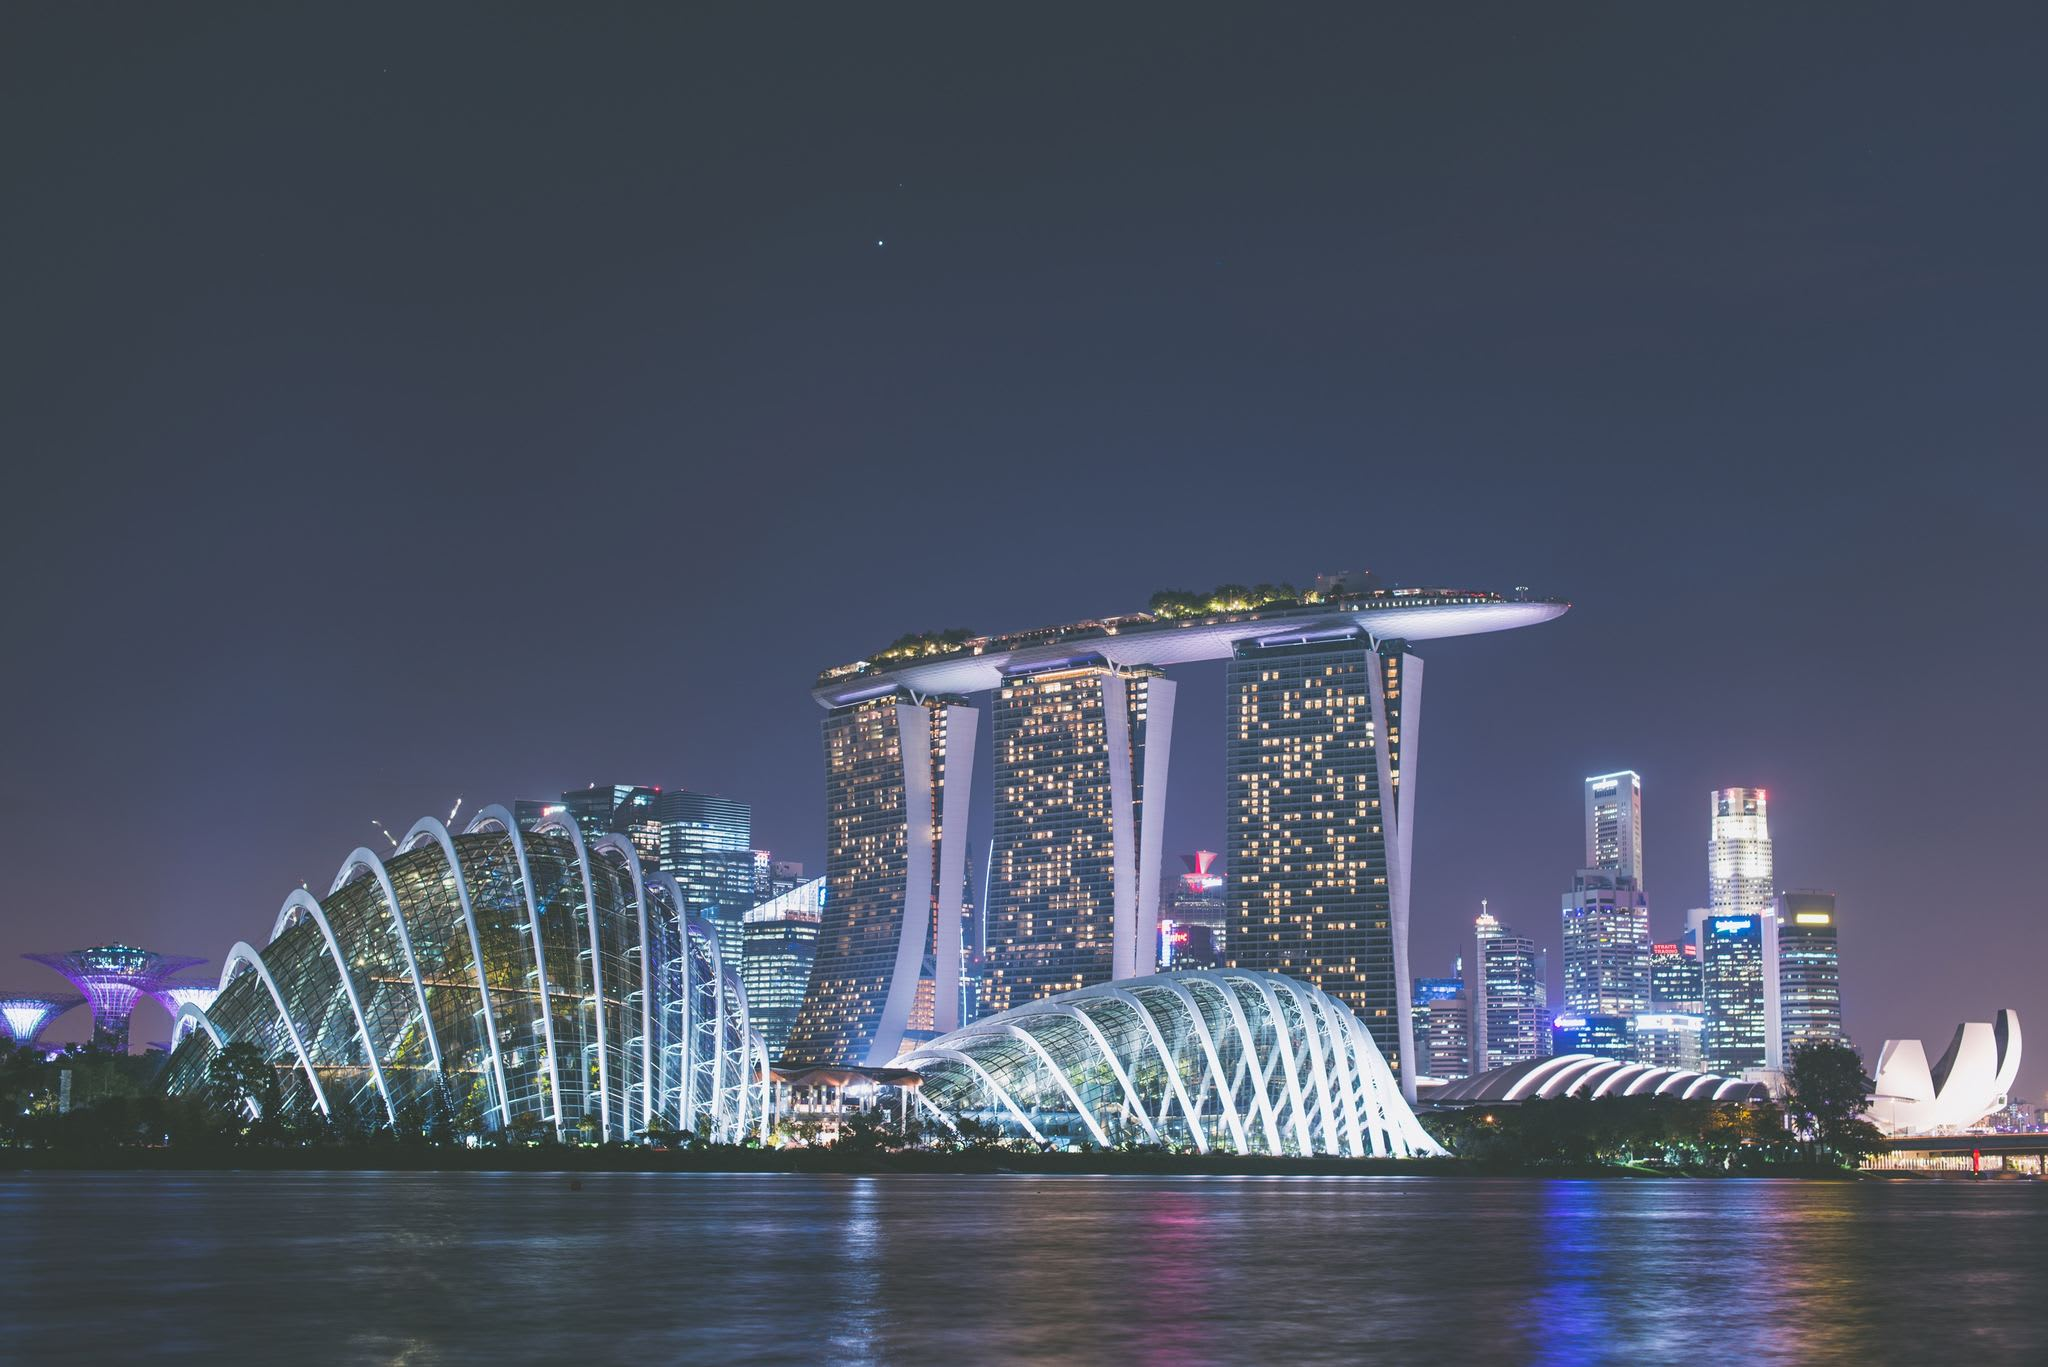 If You Are Traveling to Singapore and Have Pictures, Please Stop by the Media Affairs Office